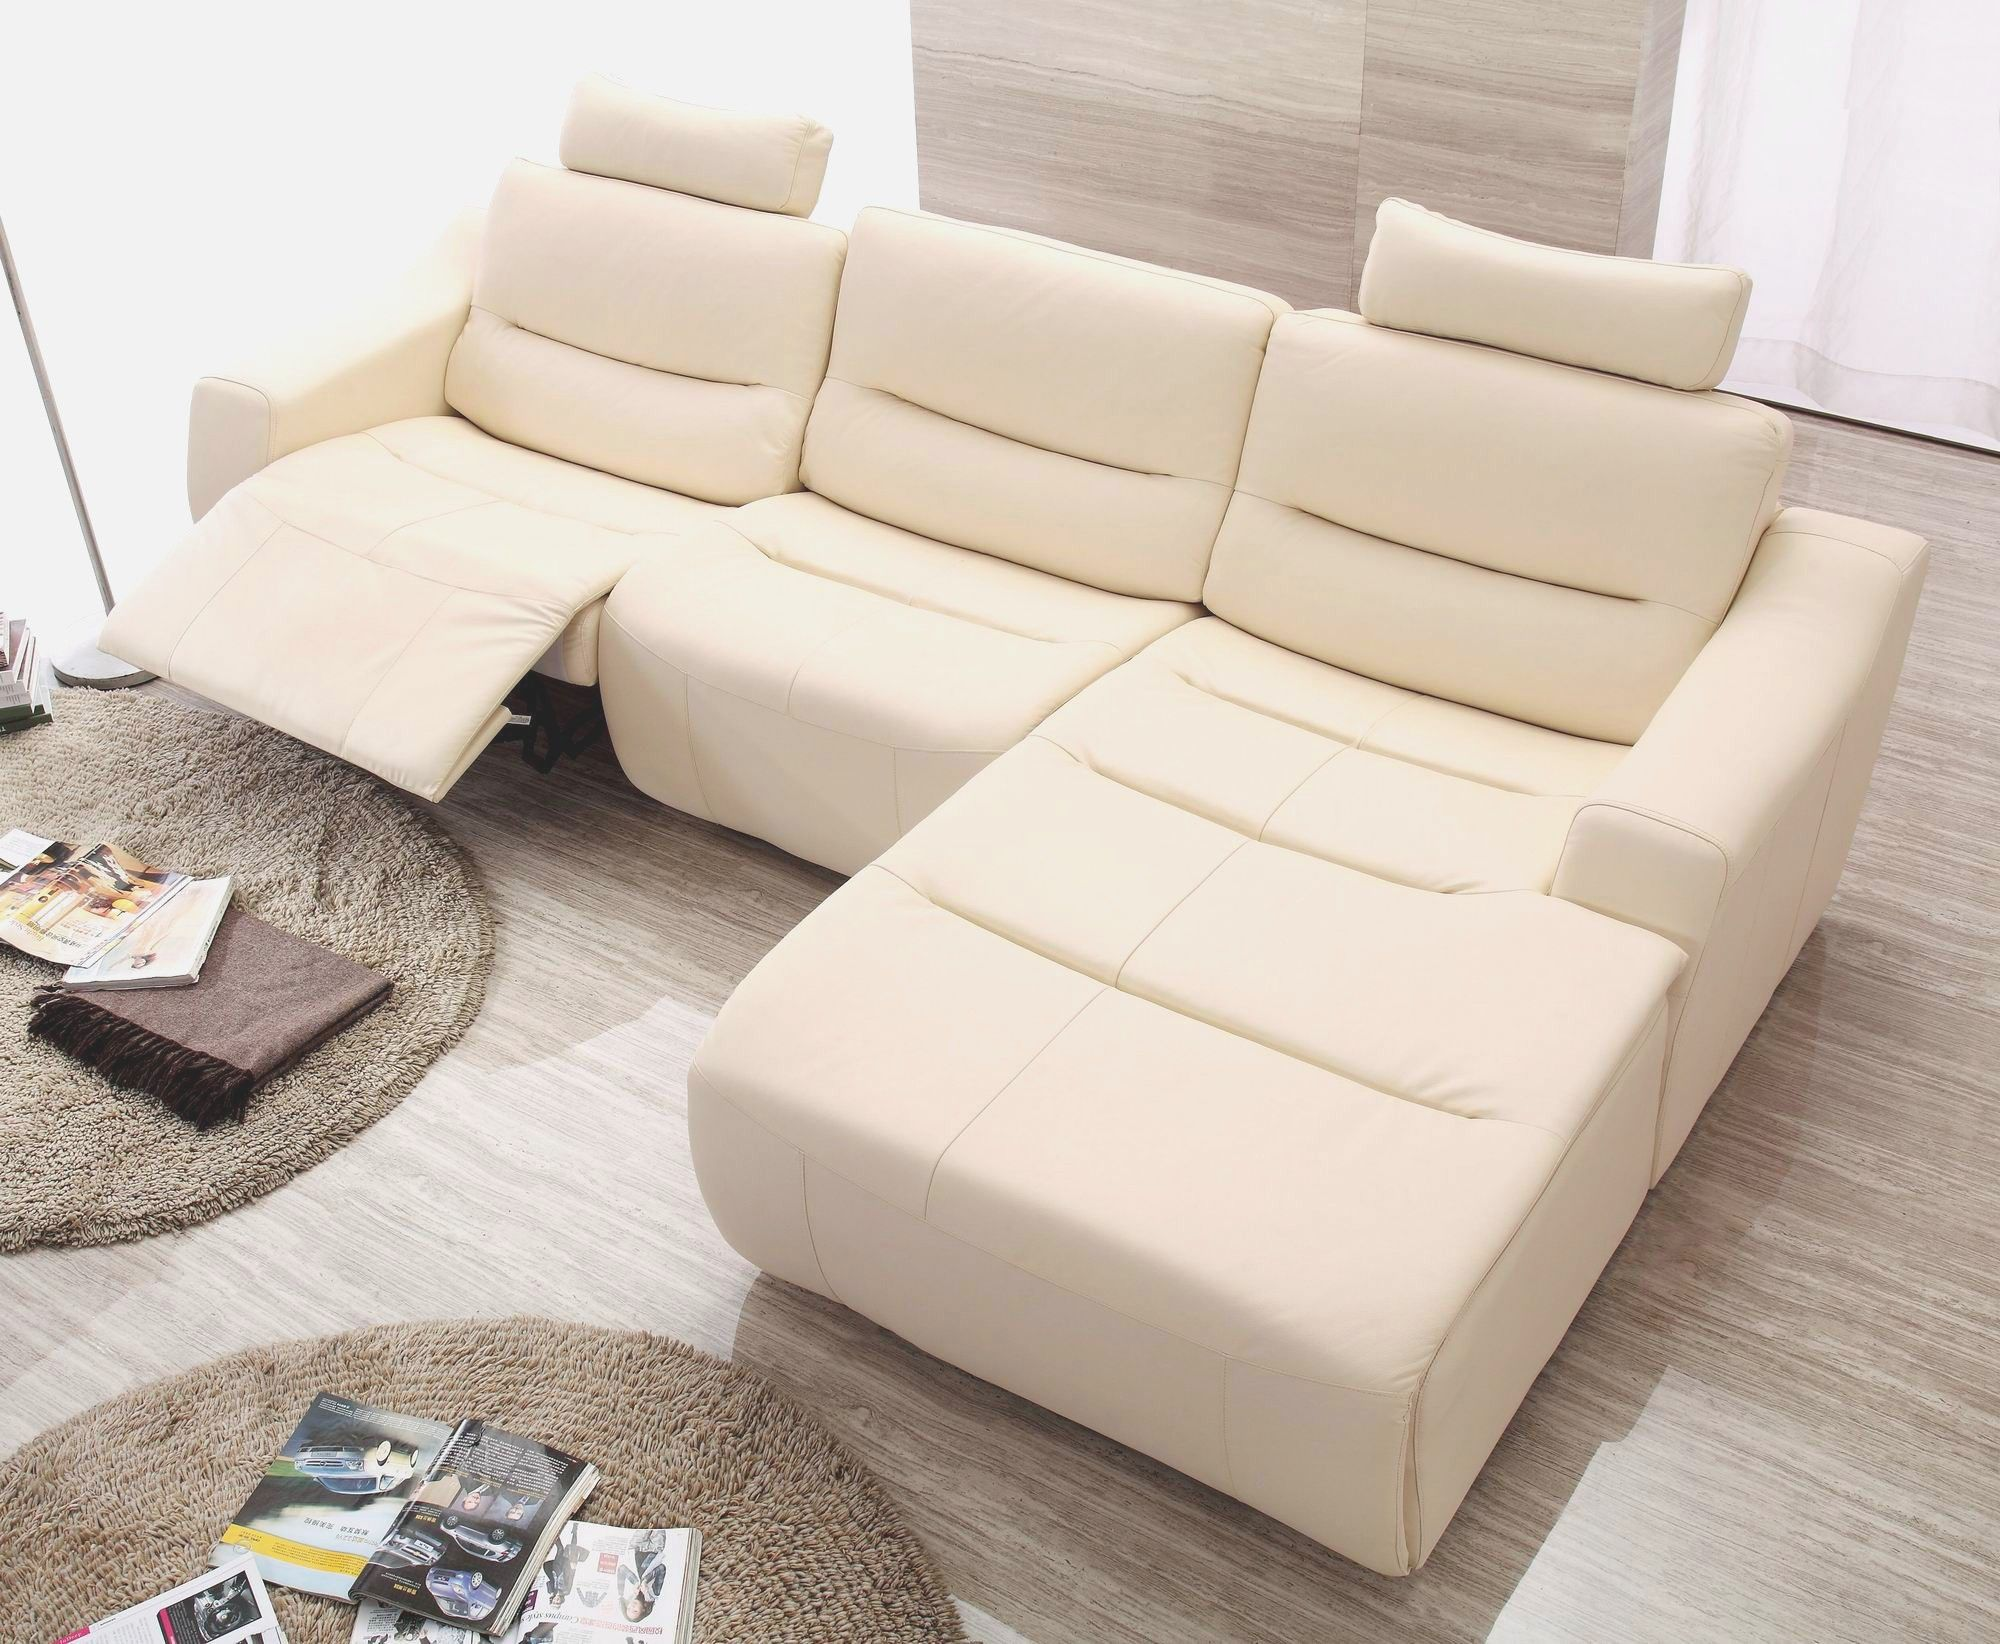 Red Sectional Living Room Ideas - living room ideas with red ...